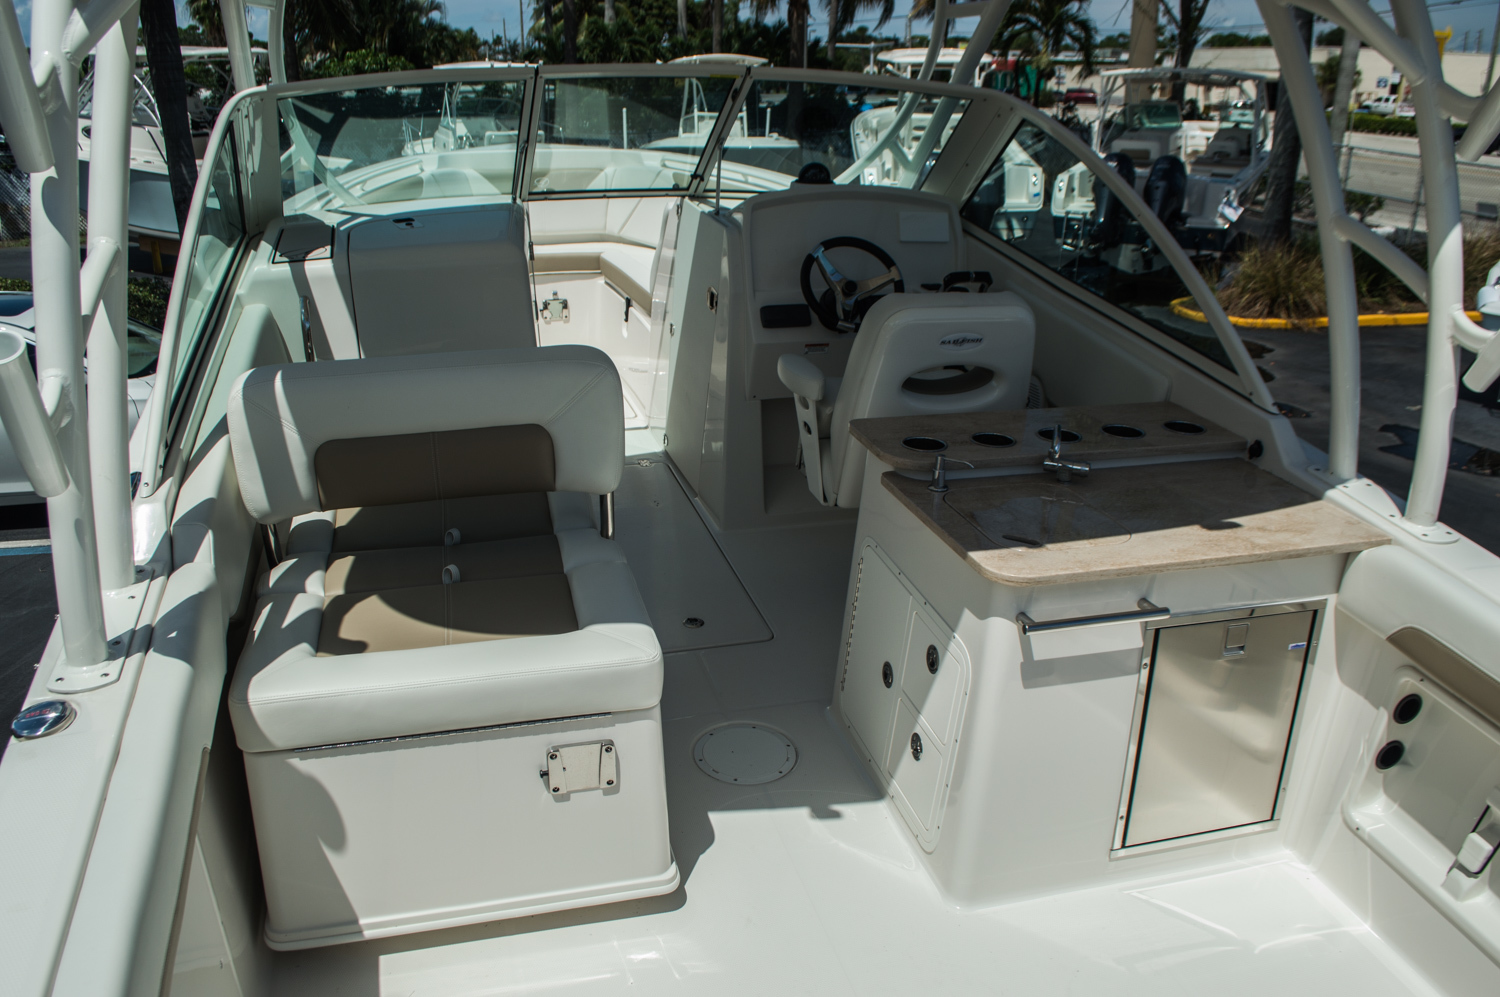 Thumbnail 8 for New 2016 Sailfish 275 Dual Console boat for sale in West Palm Beach, FL